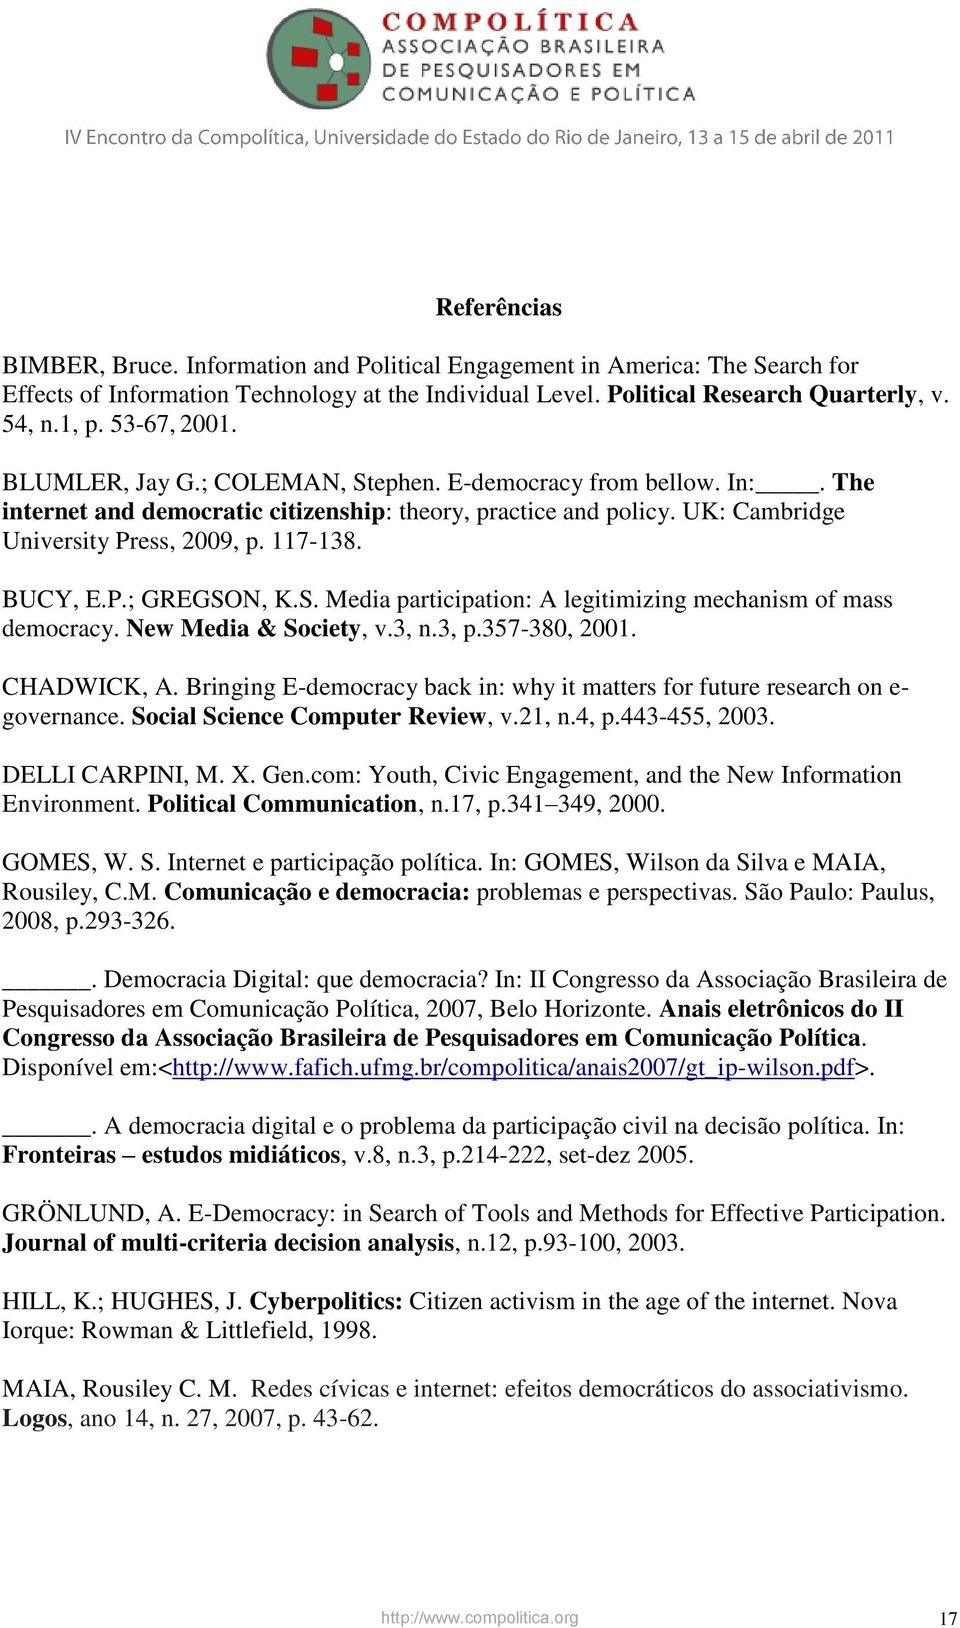 BUCY, E.P.; GREGSON, K.S. Media participation: A legitimizing mechanism of mass democracy. New Media & Society, v.3, n.3, p.357-380, 2001. CHADWICK, A.